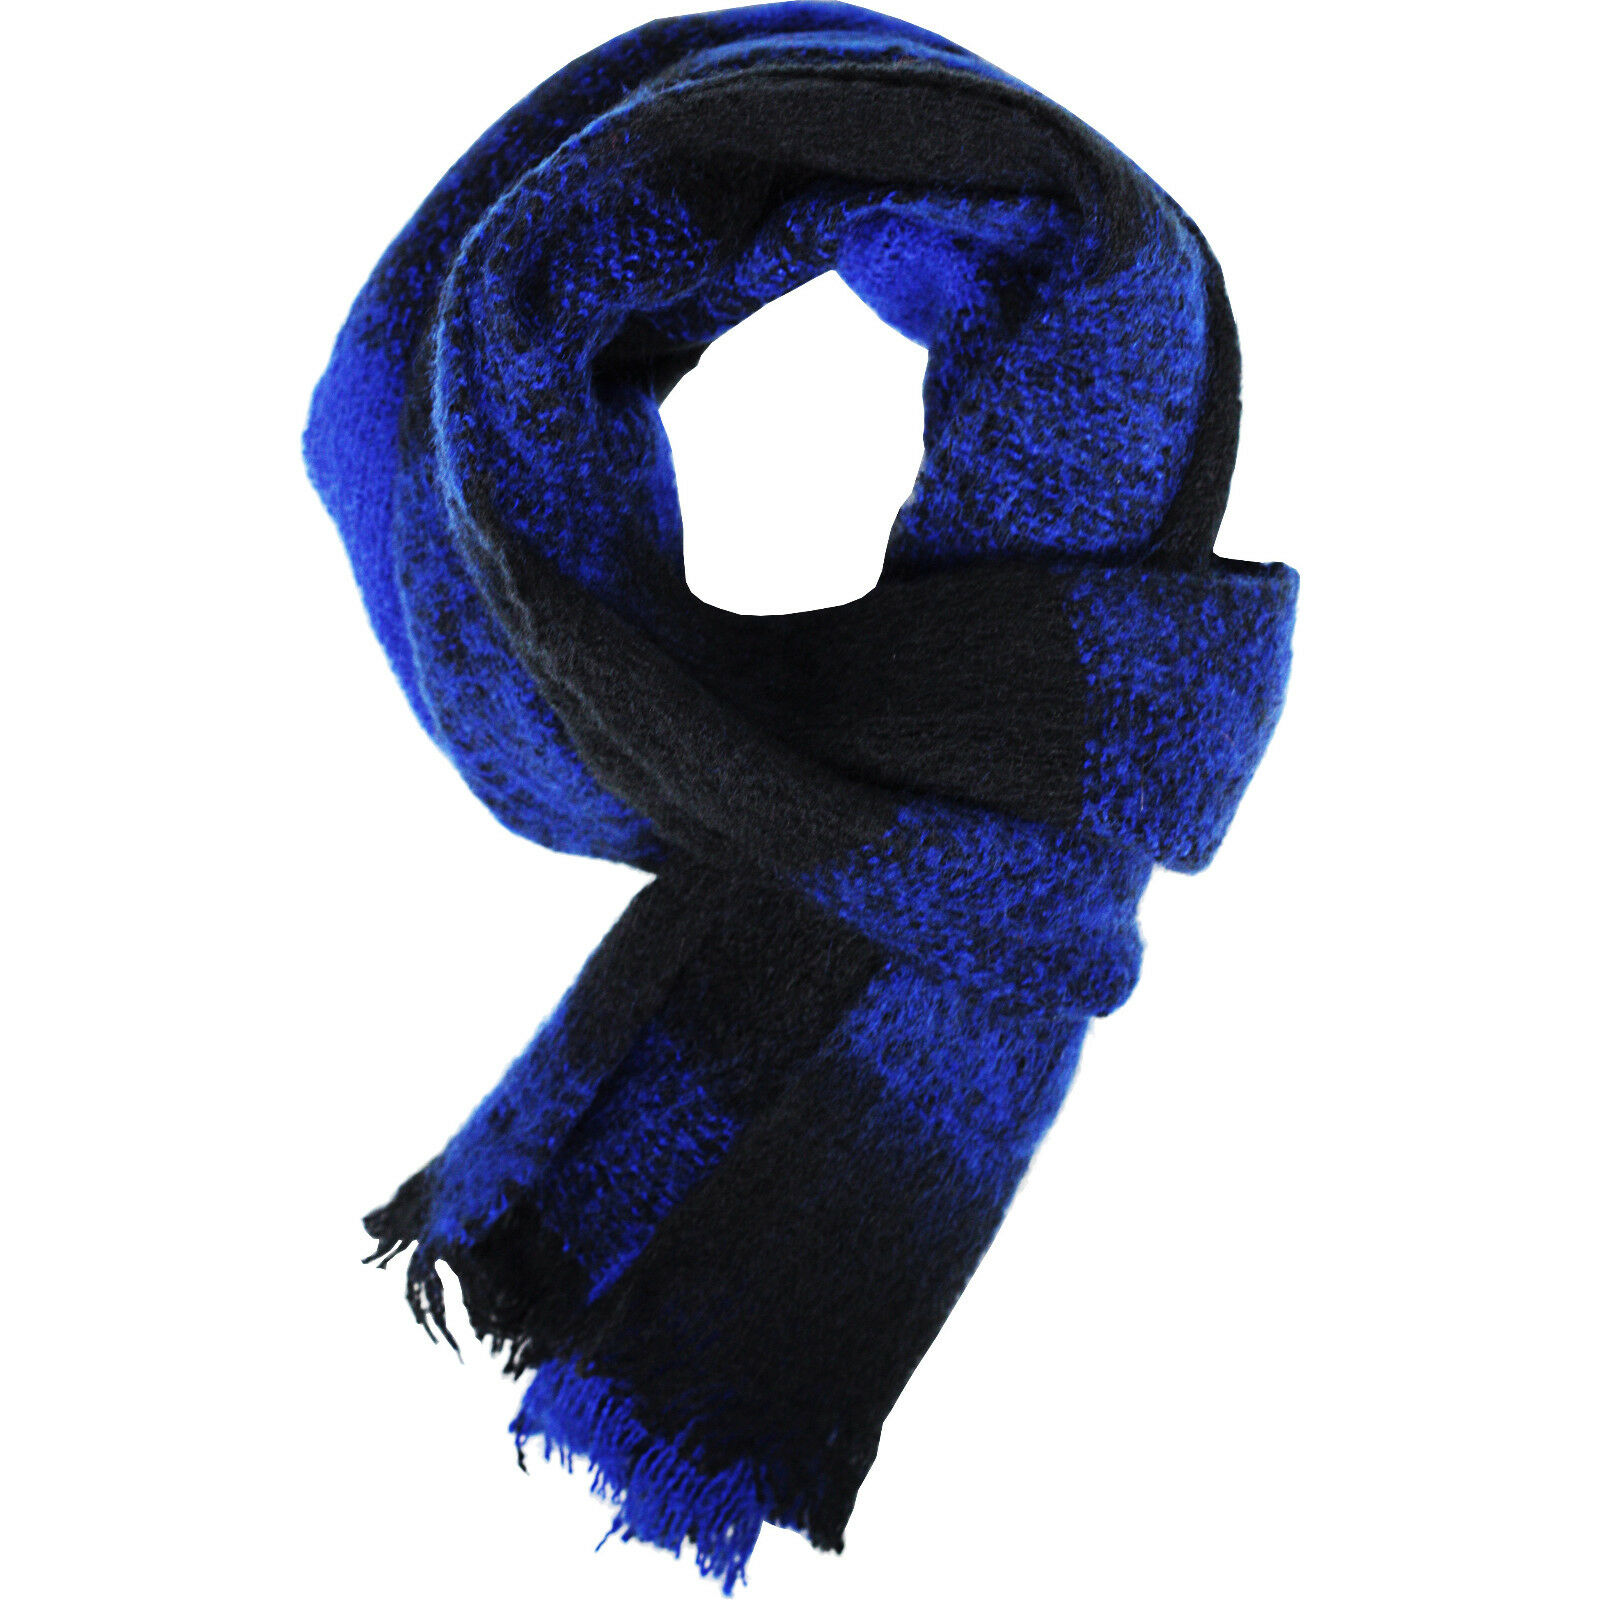 New Mens Scarf Check Black Blue Warm Soft Knit Winter Knitted Neck ...